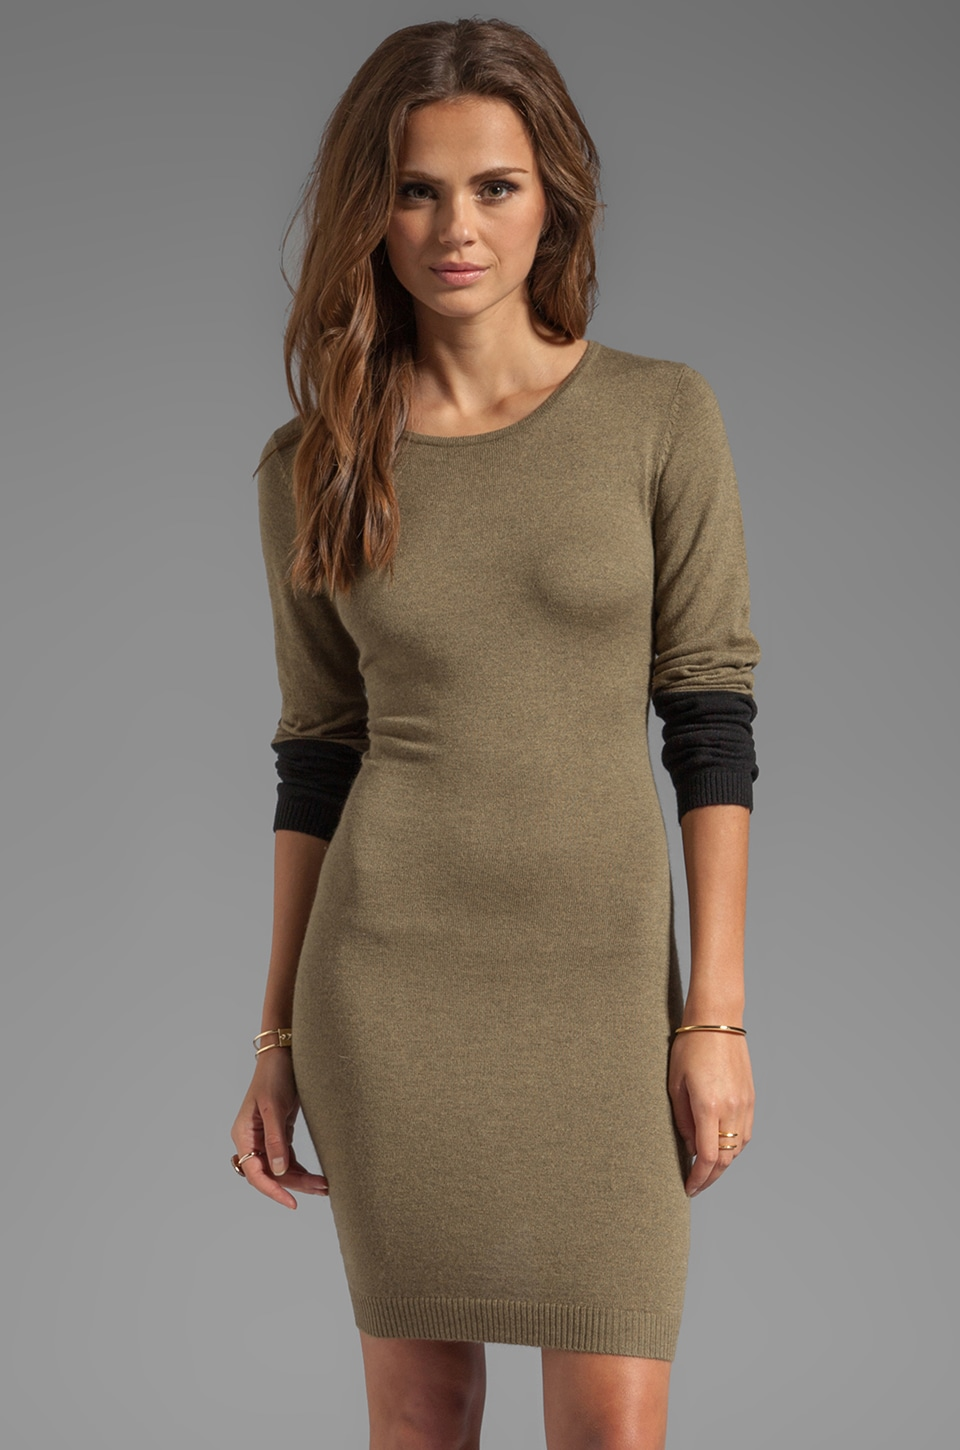 Central Park West Kingsport Sweaterdress in Olive